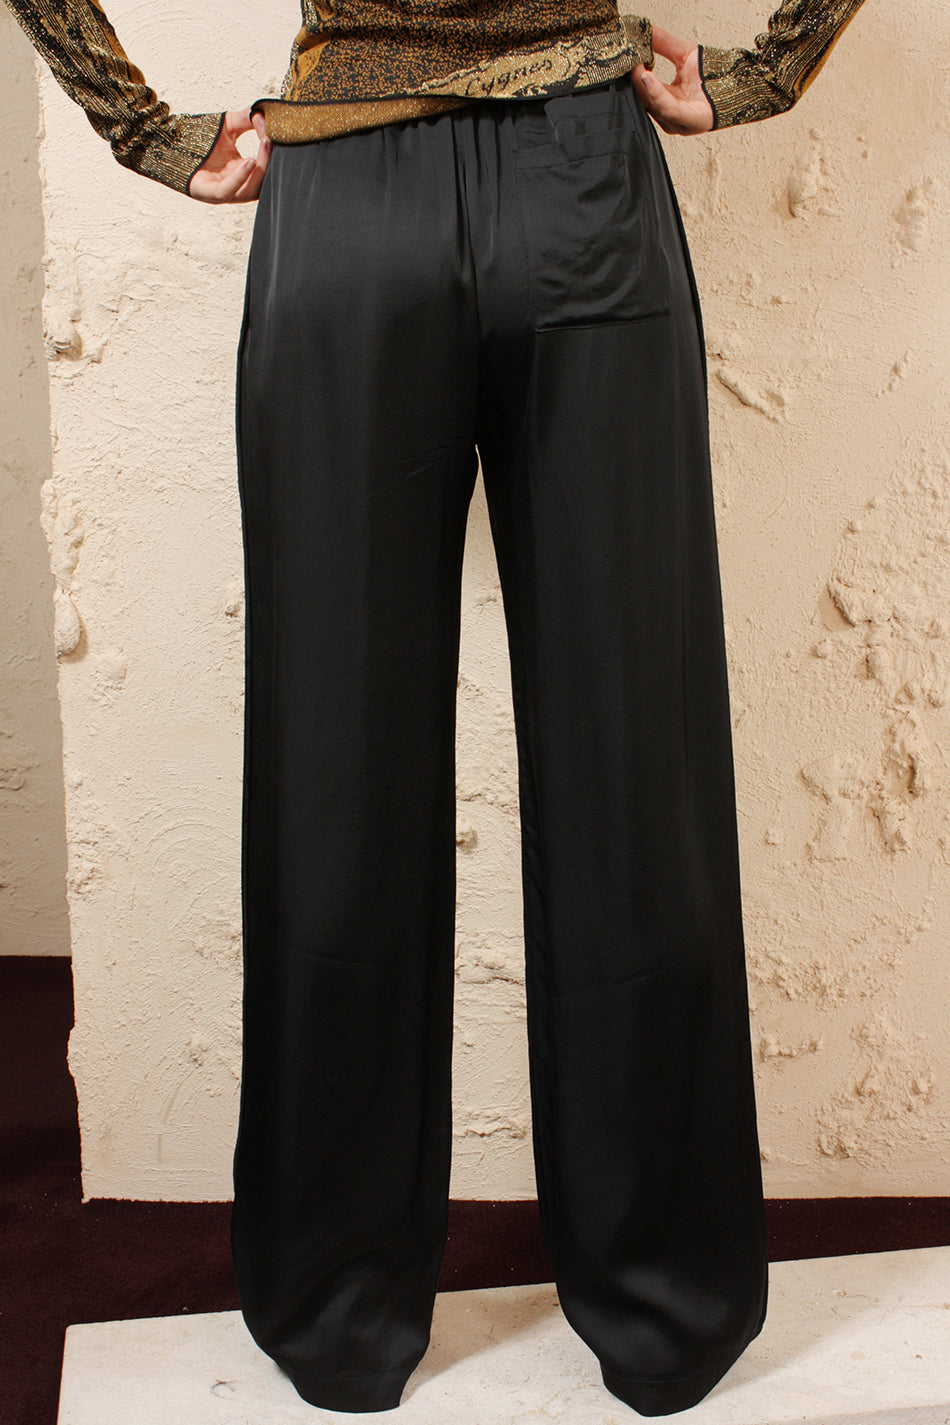 Pernelle Satin Trousers